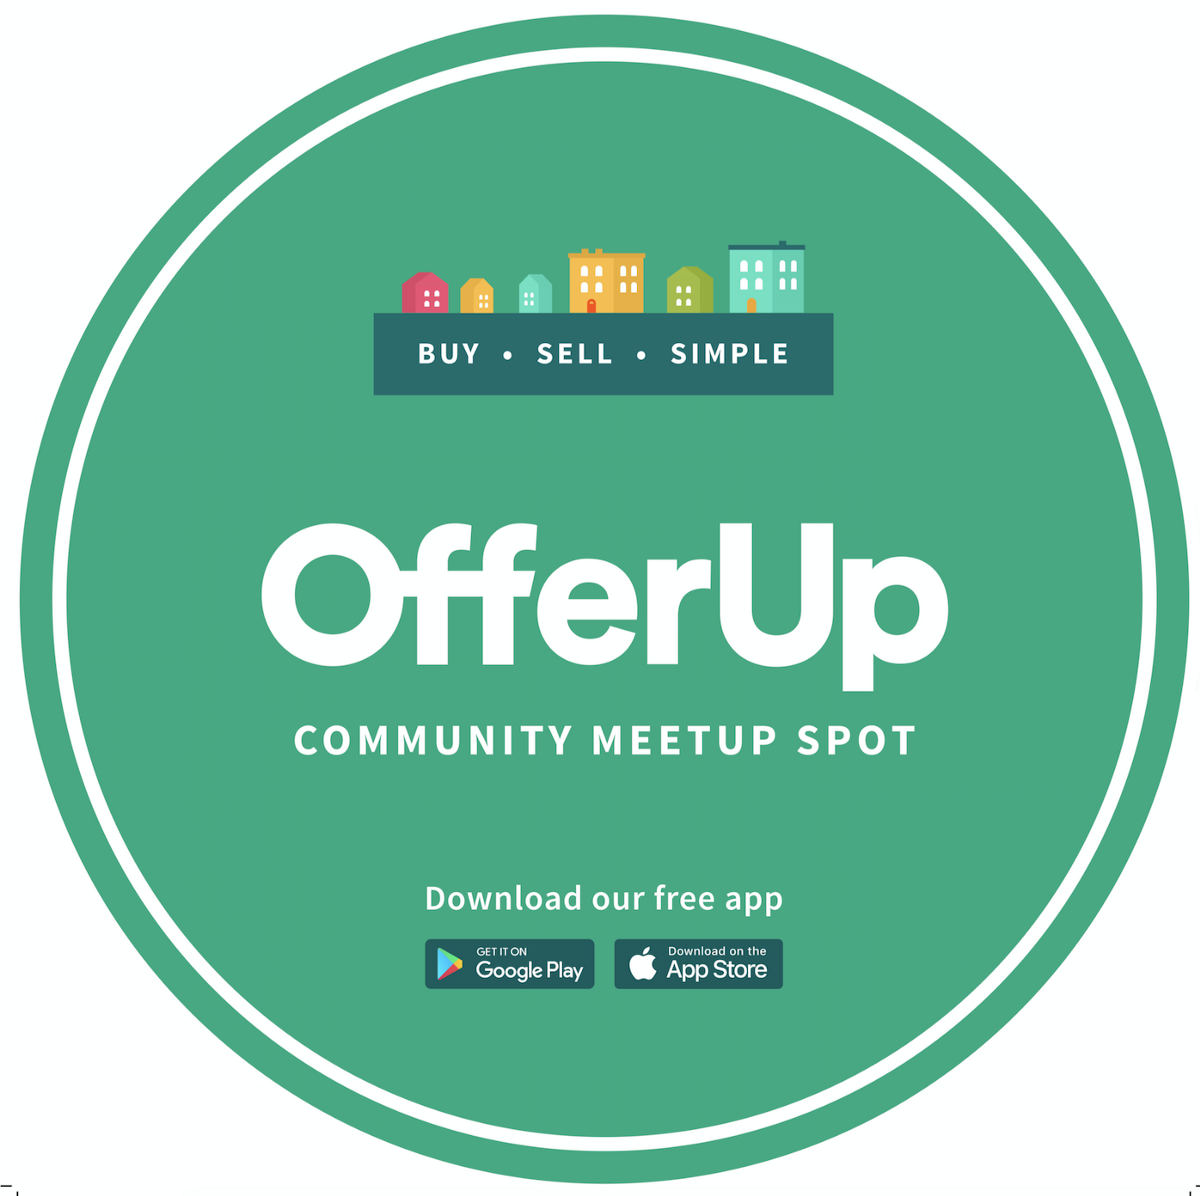 Community Meetup sign